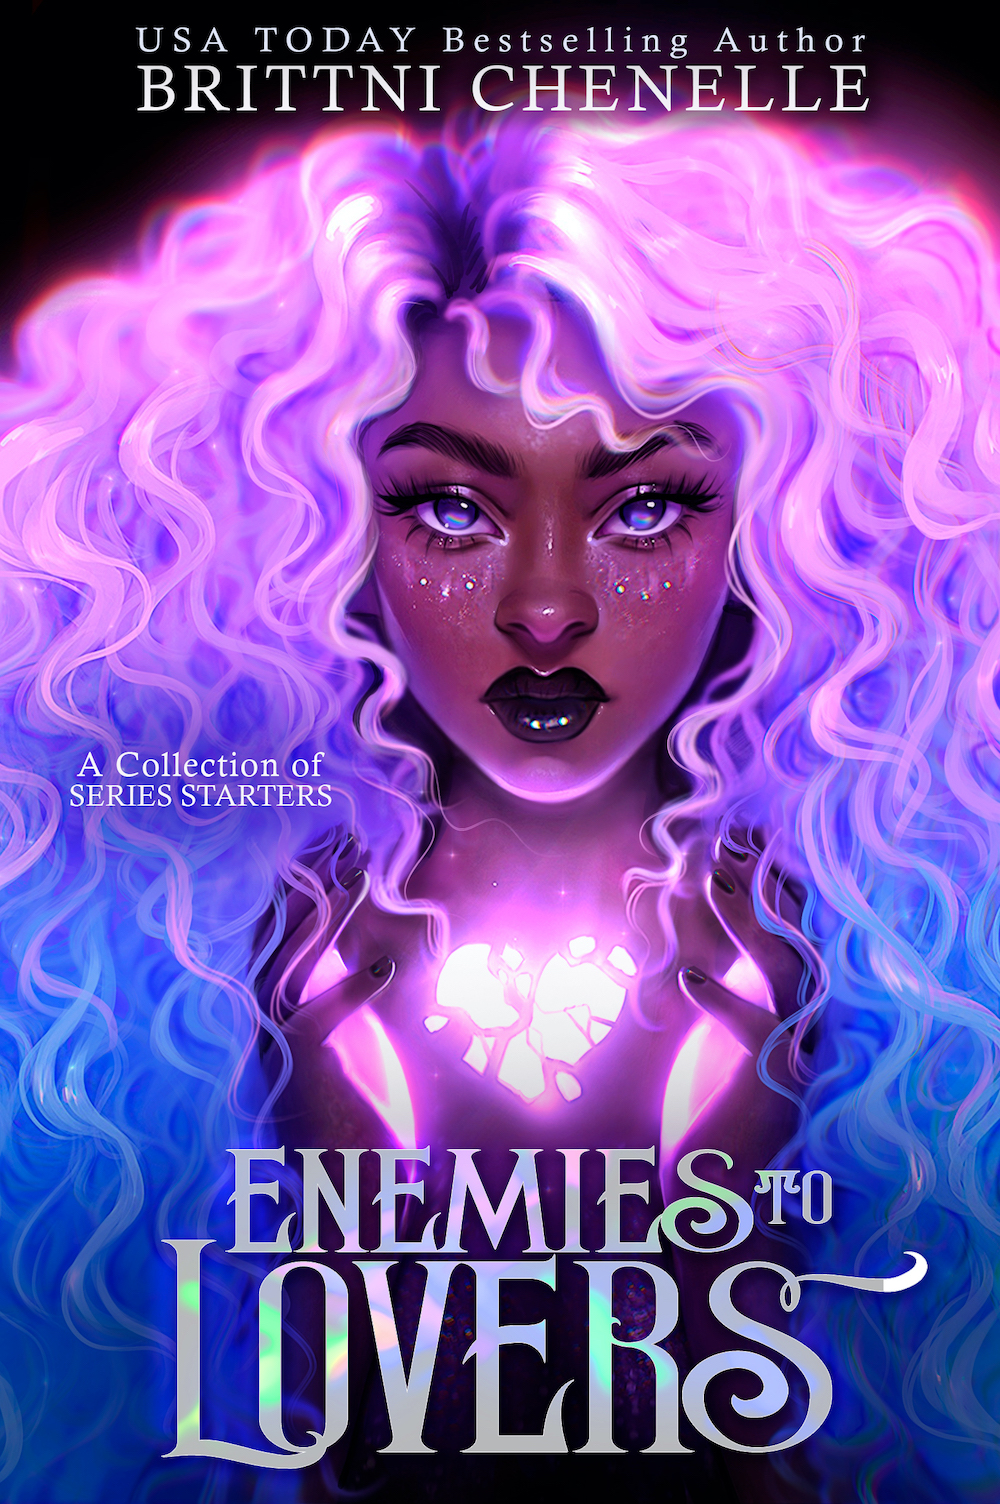 Enemies To Lovers: Book Cover